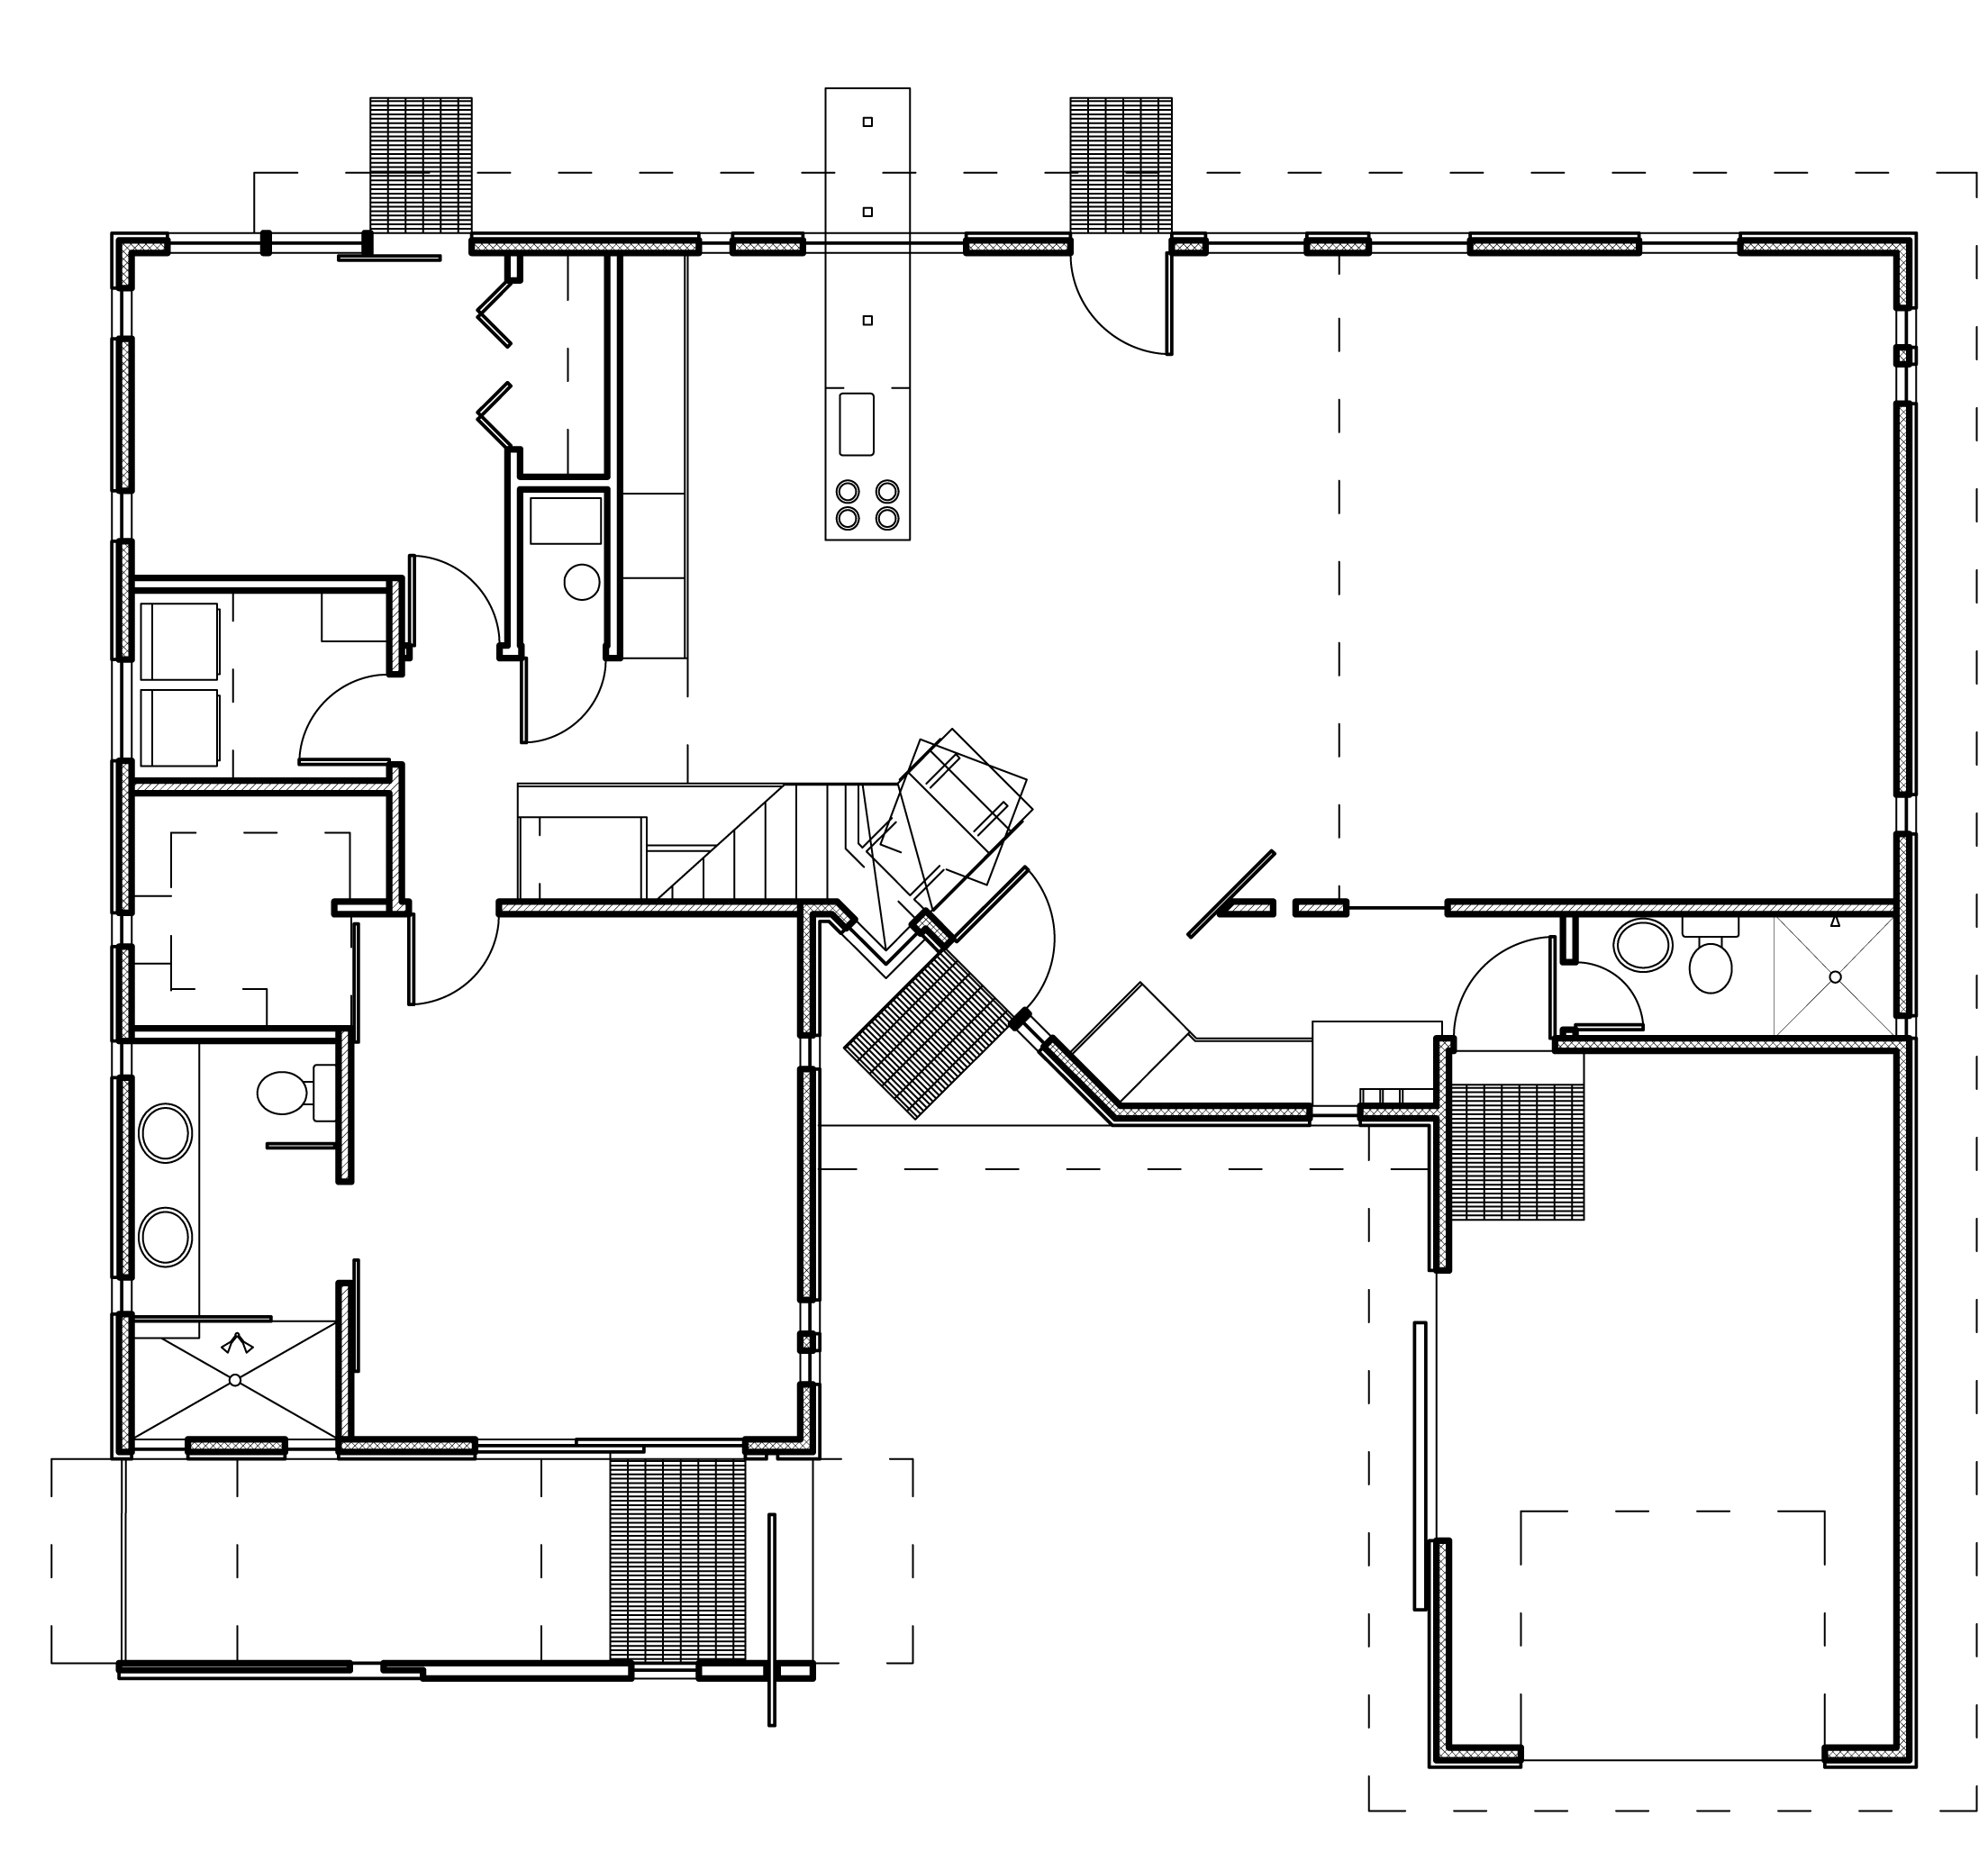 Modern house plans contemporary home designs floor plan 03 for Modern house designs and floor plans